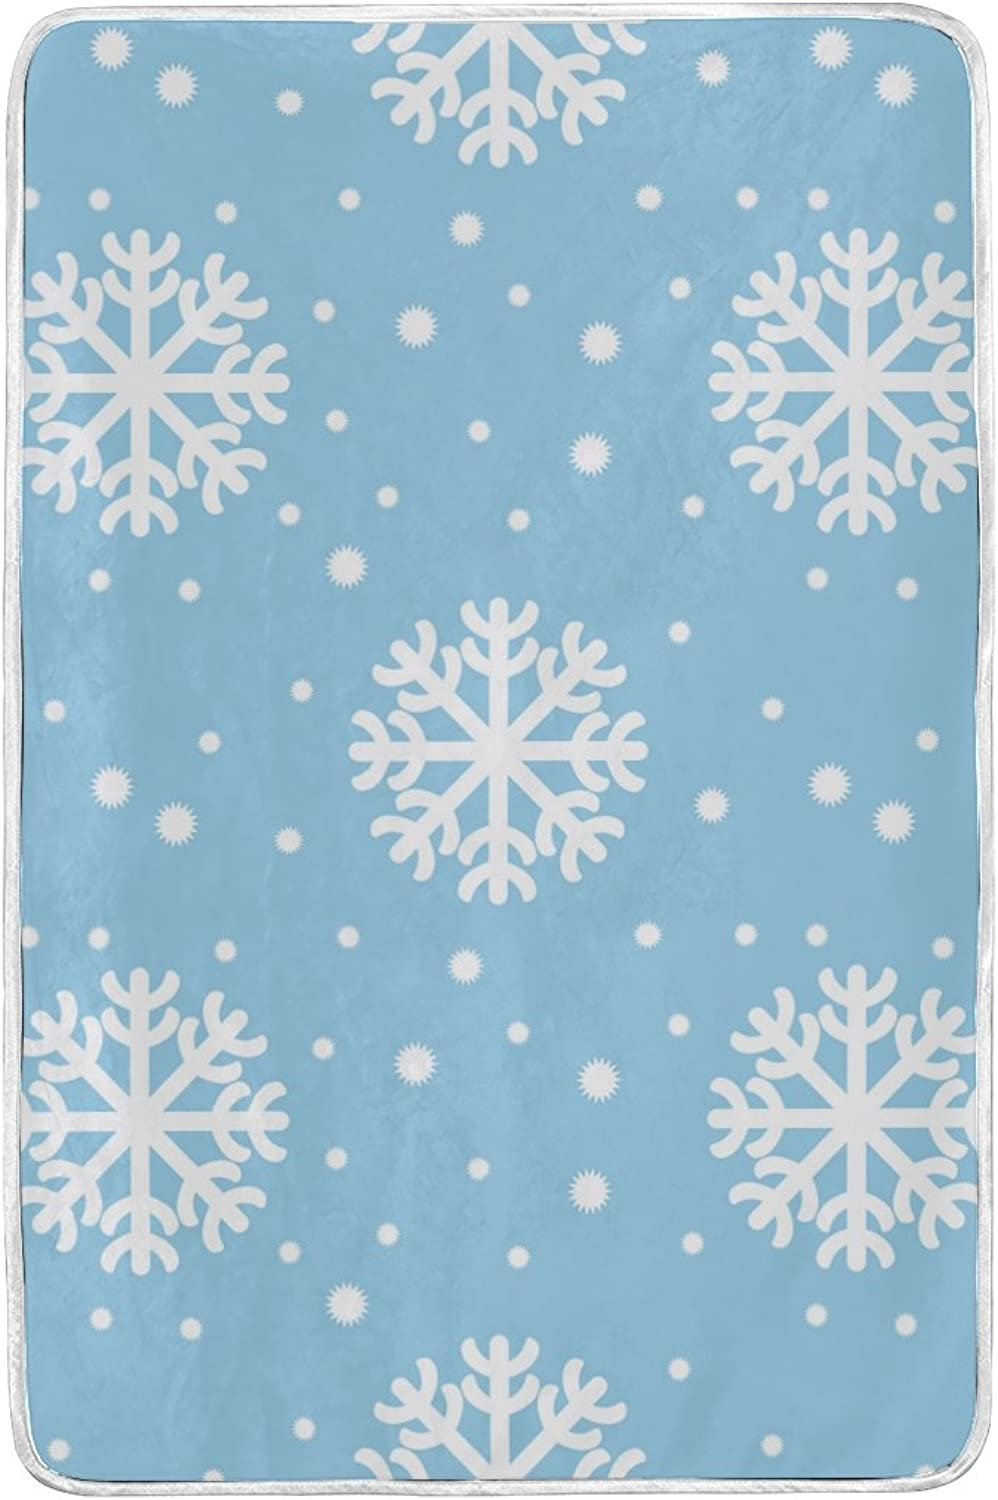 JSTEL Snowflakes Christmas And New Year Lightweight Blanket for Adults Men Women Girls Kids Girls Boys Teens Bed Extra Soft Polyester Fabric Super Warm Sofa Blanket Throw Size 60 x 90 Inch